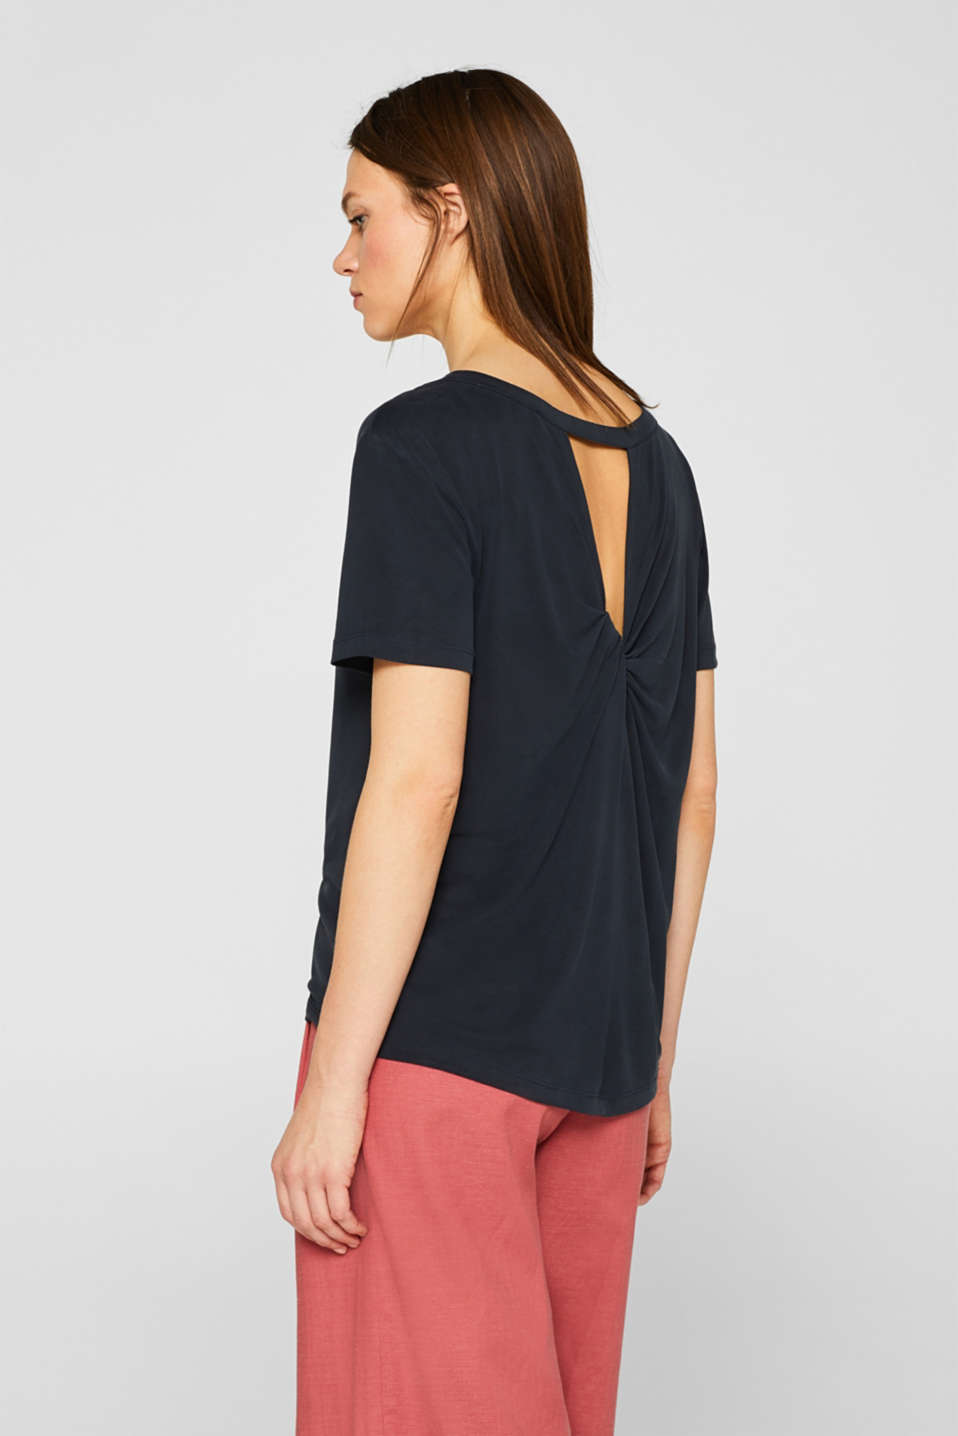 Top with a cut-out at the back and draped effect, BLACK, detail image number 1